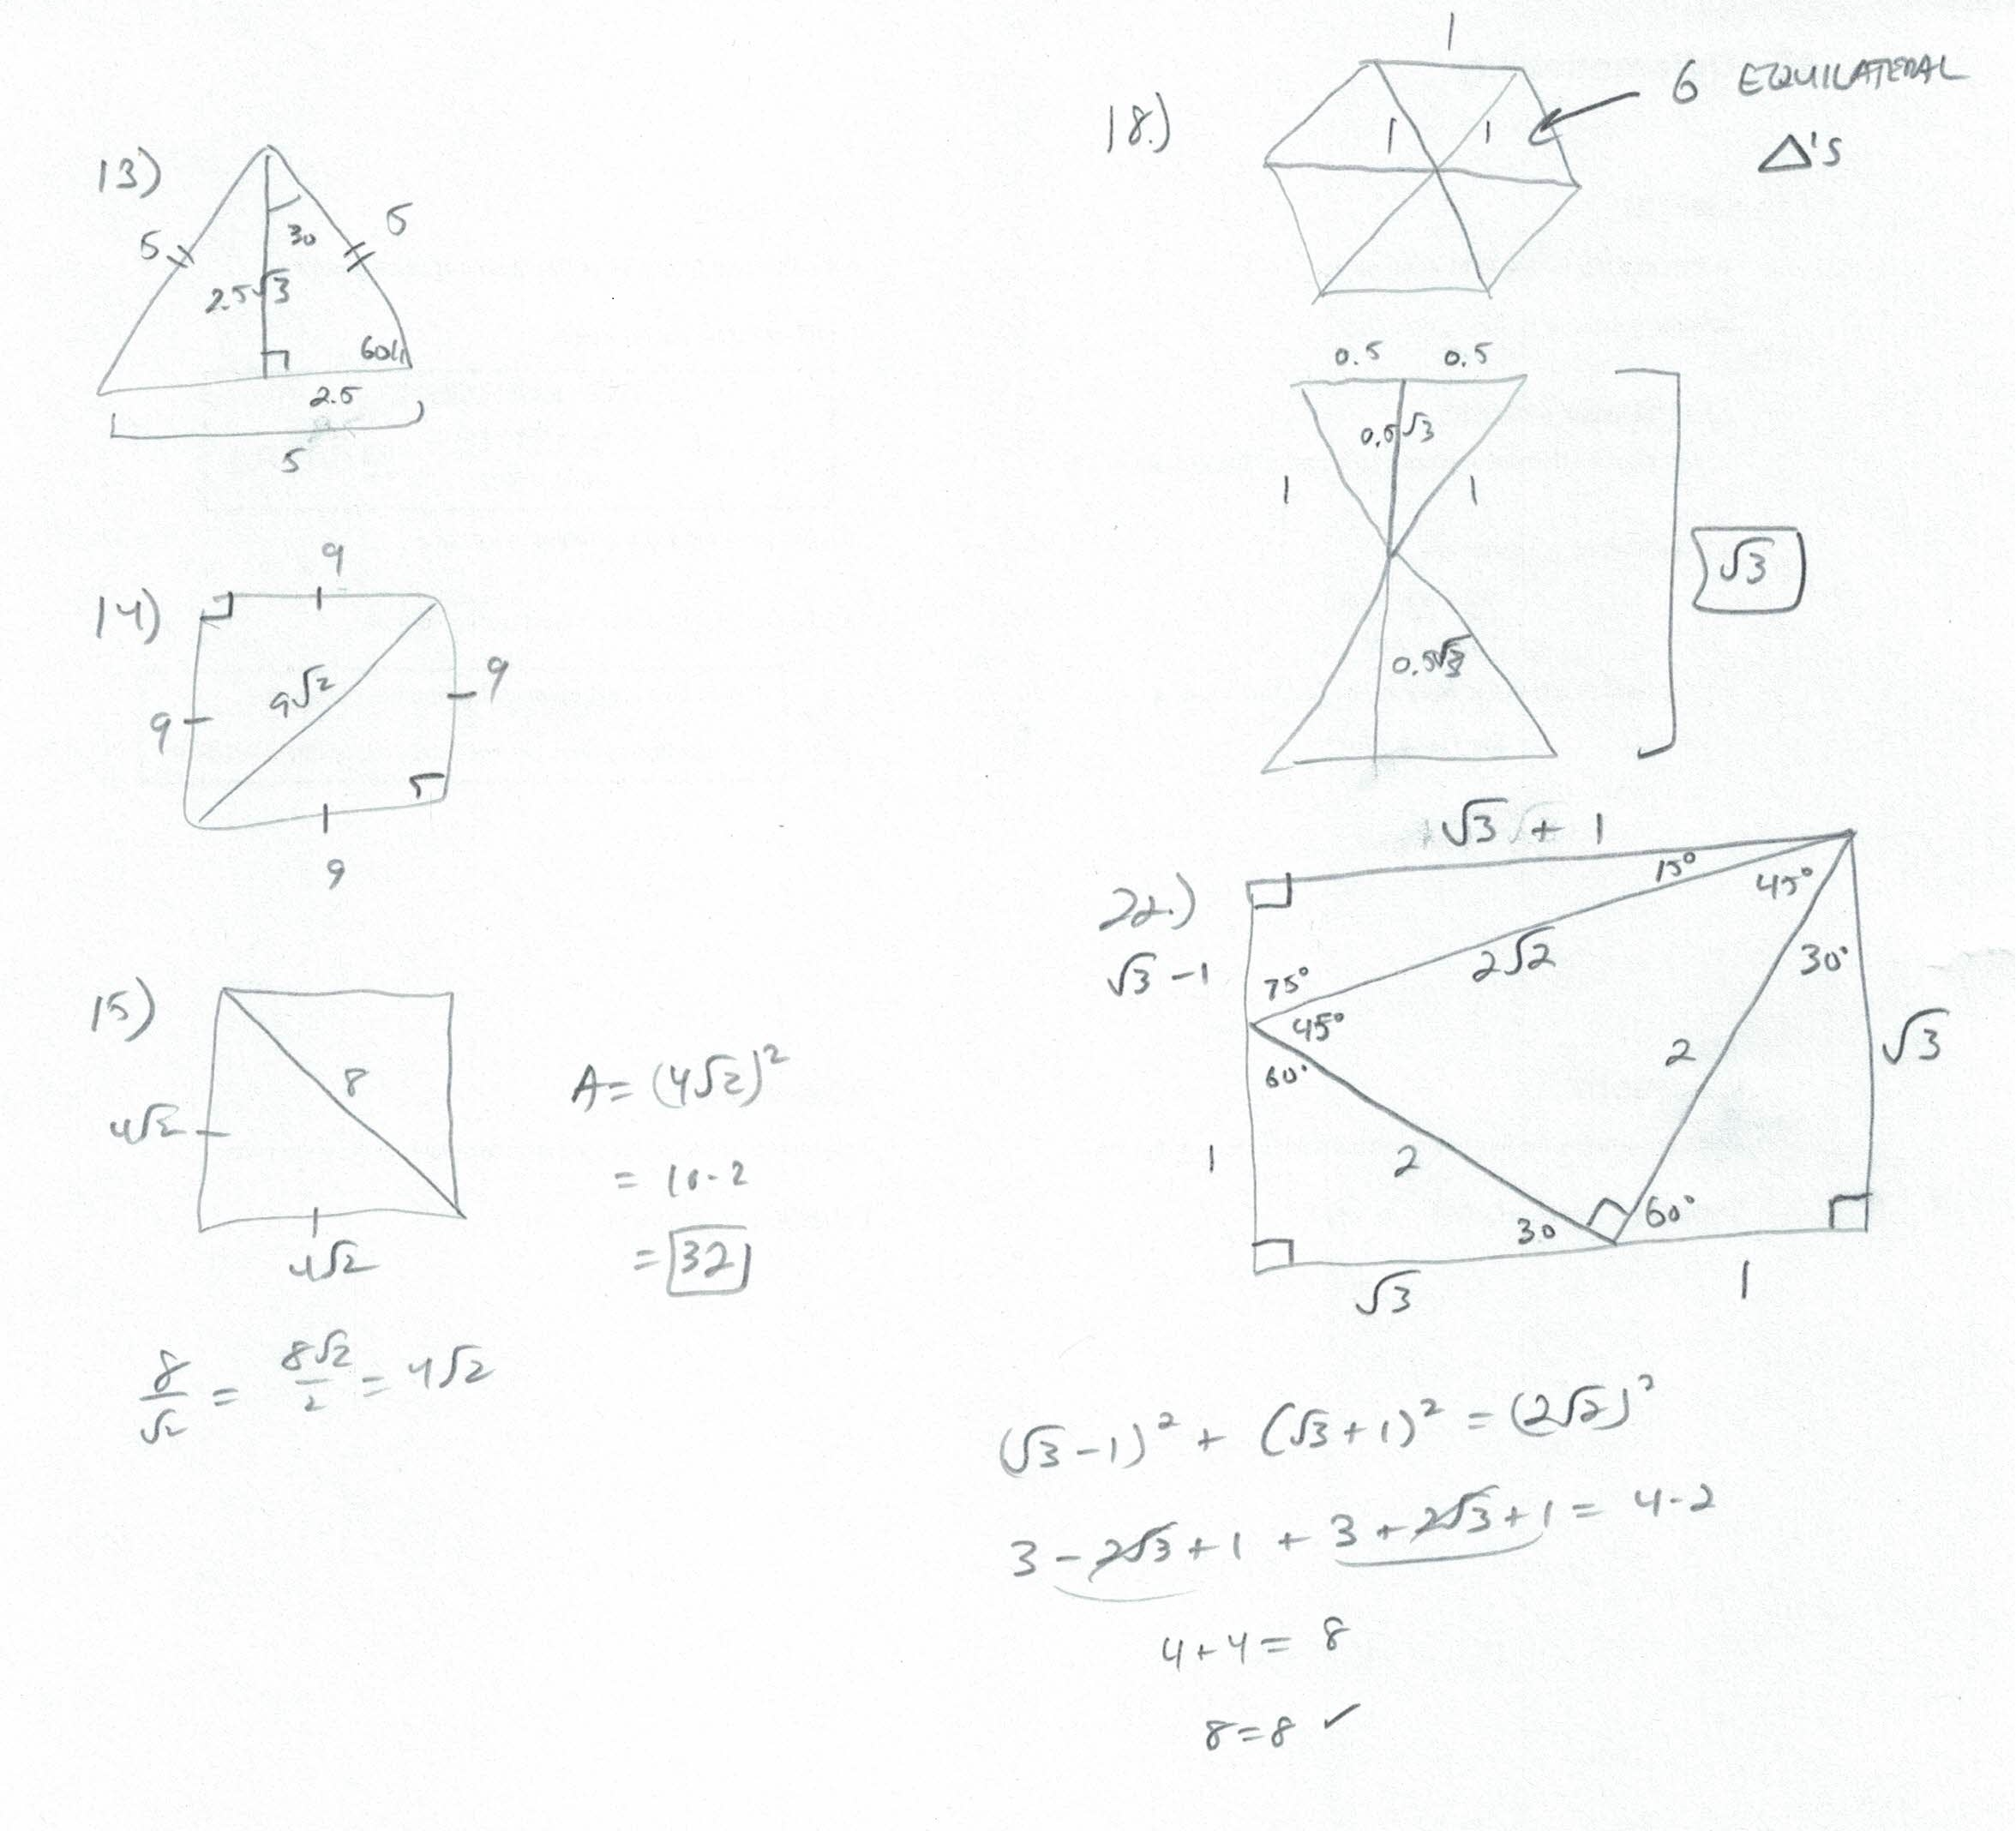 Chapter 09 - Right Triangles - Mr. Urbanc's classroom